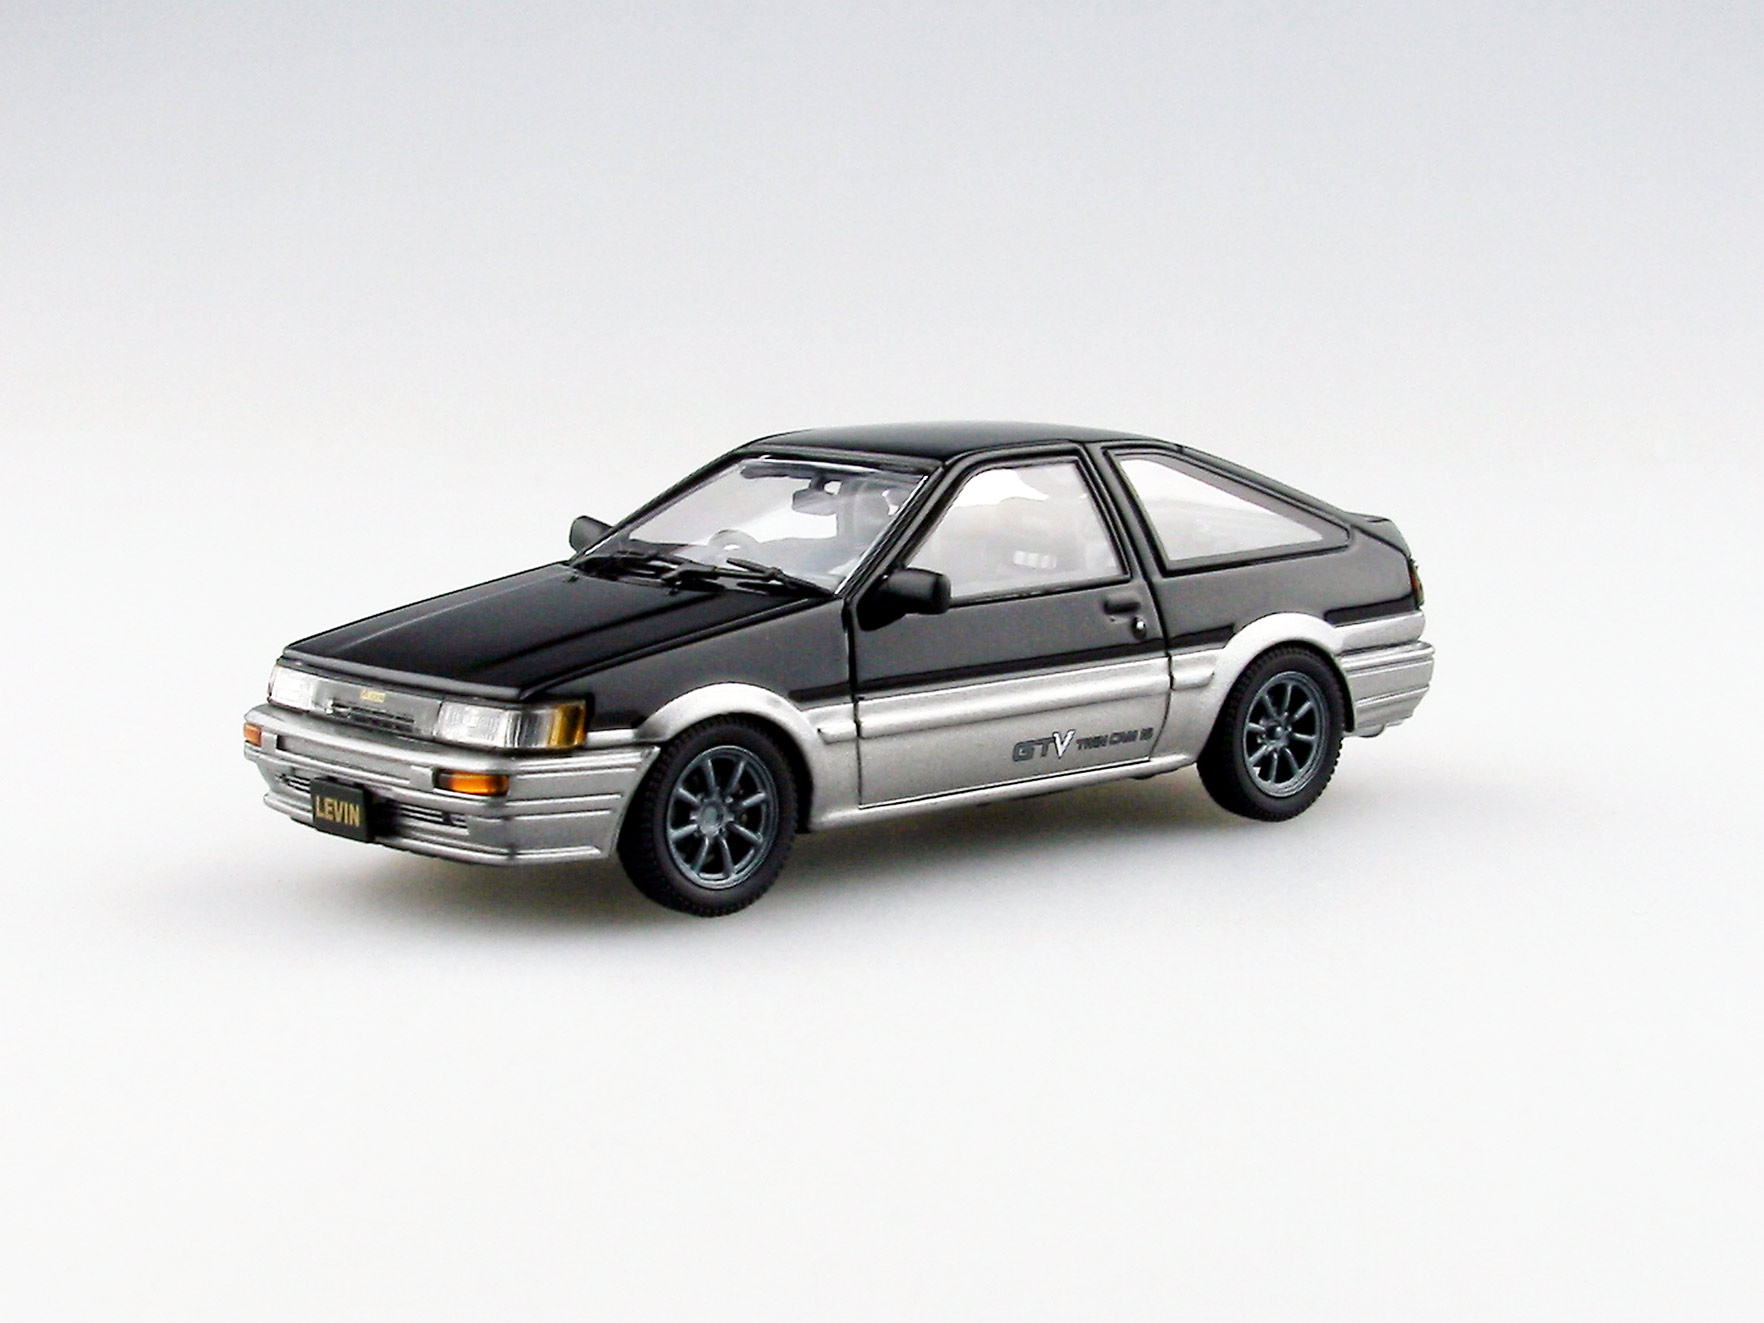 【45187】TOYOTA COROLLA LEVIN 1600GTV with alloy wheel (BLACK/SILVER)